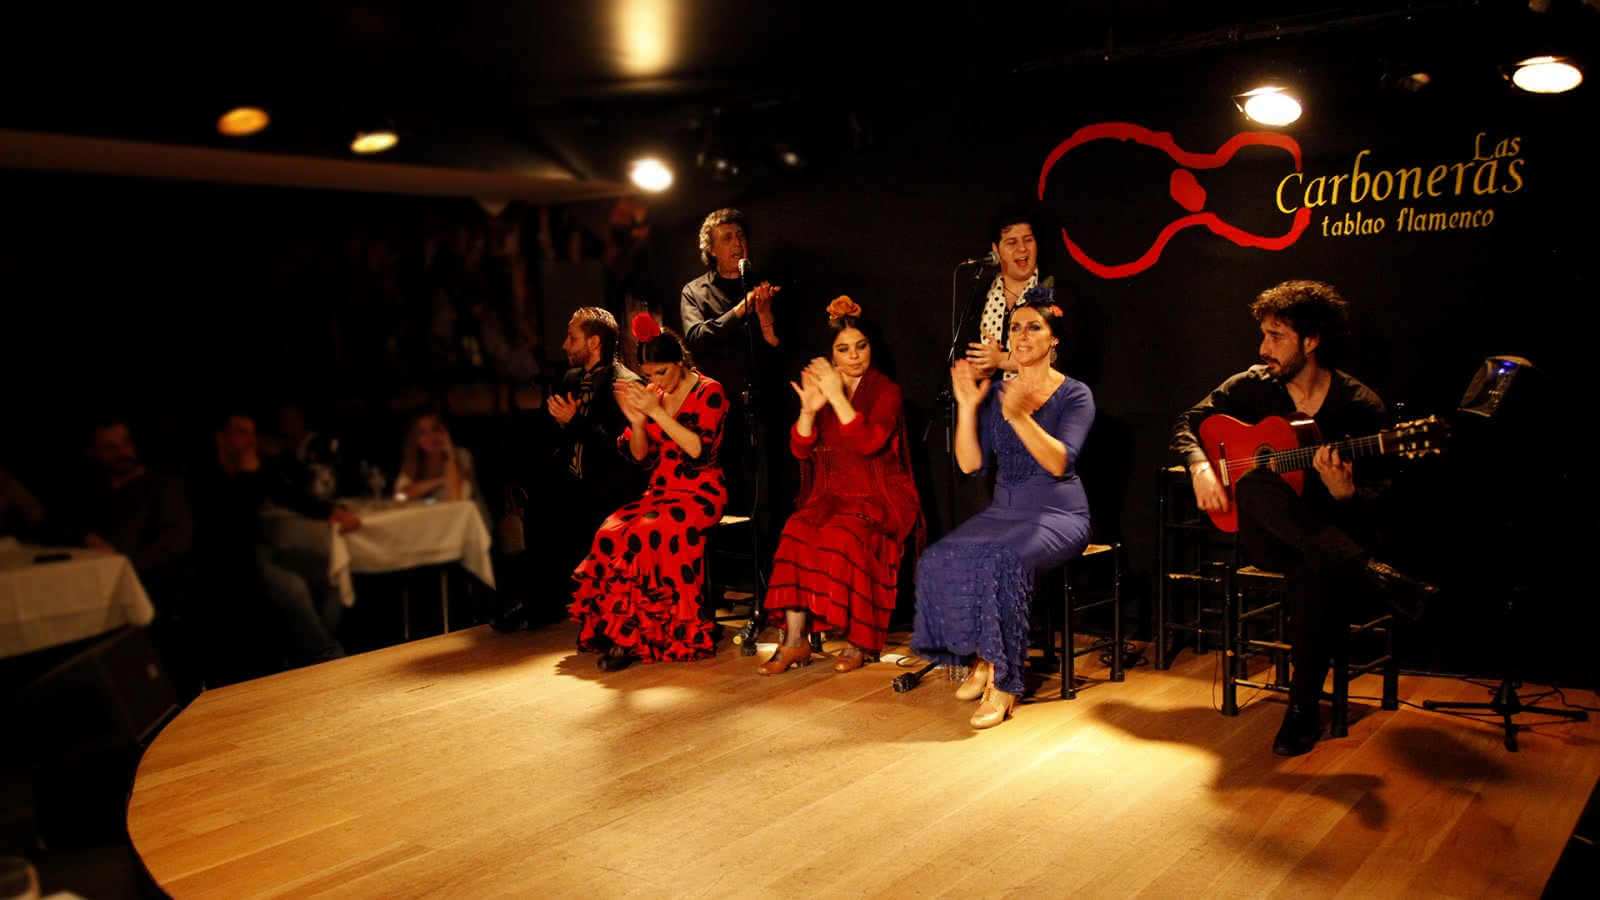 Las Carboneras tablao Flamenco in Madrid